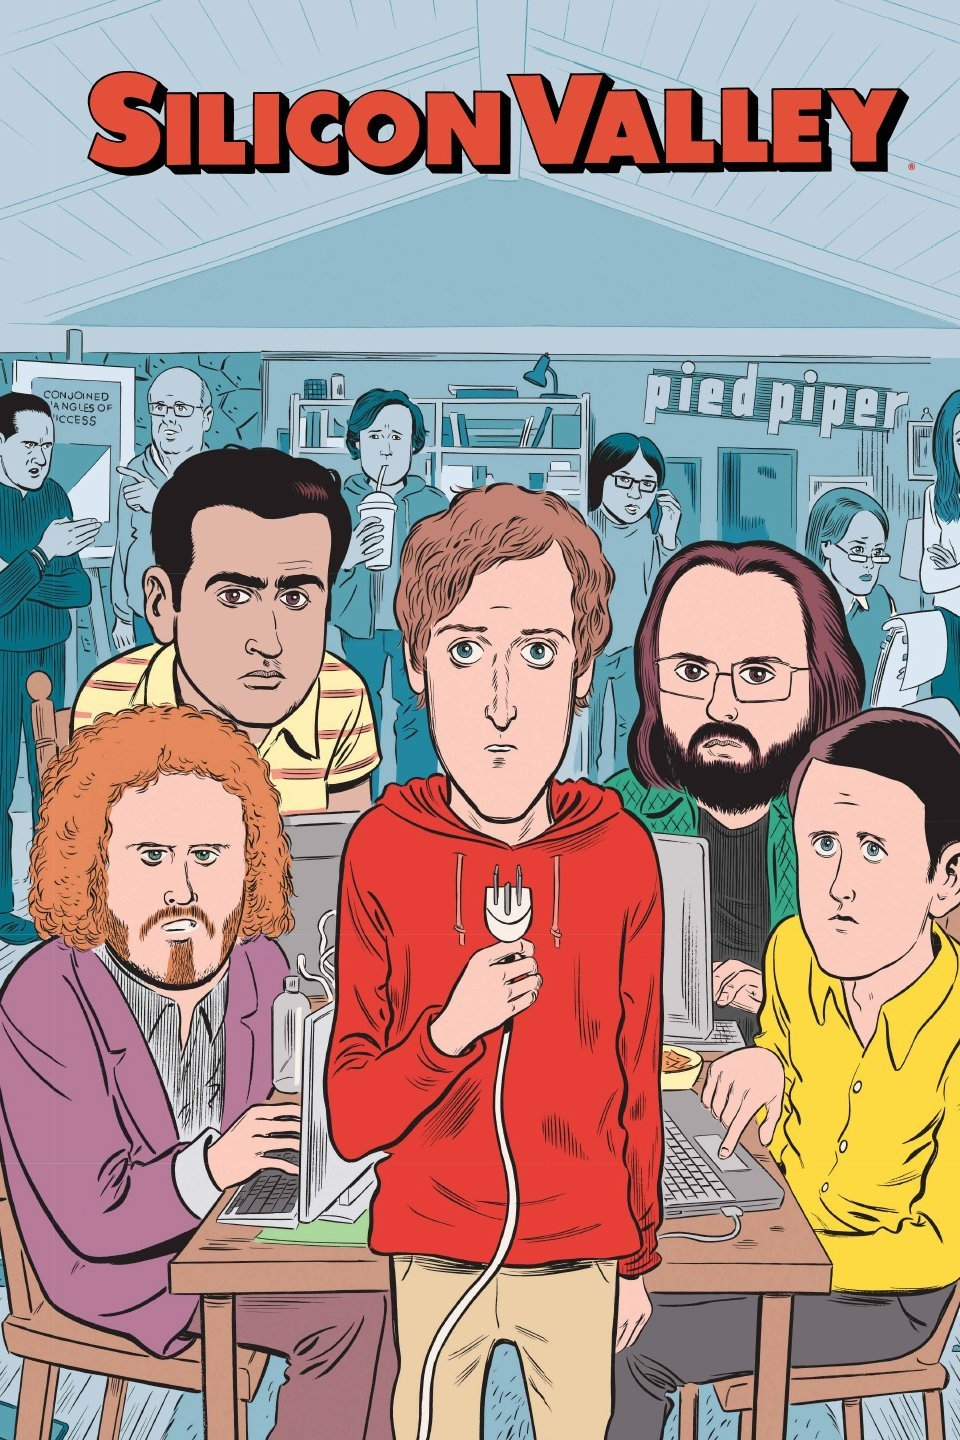 Silicon Valley Season 4 Episode 1 480p WEB-DL 100MB